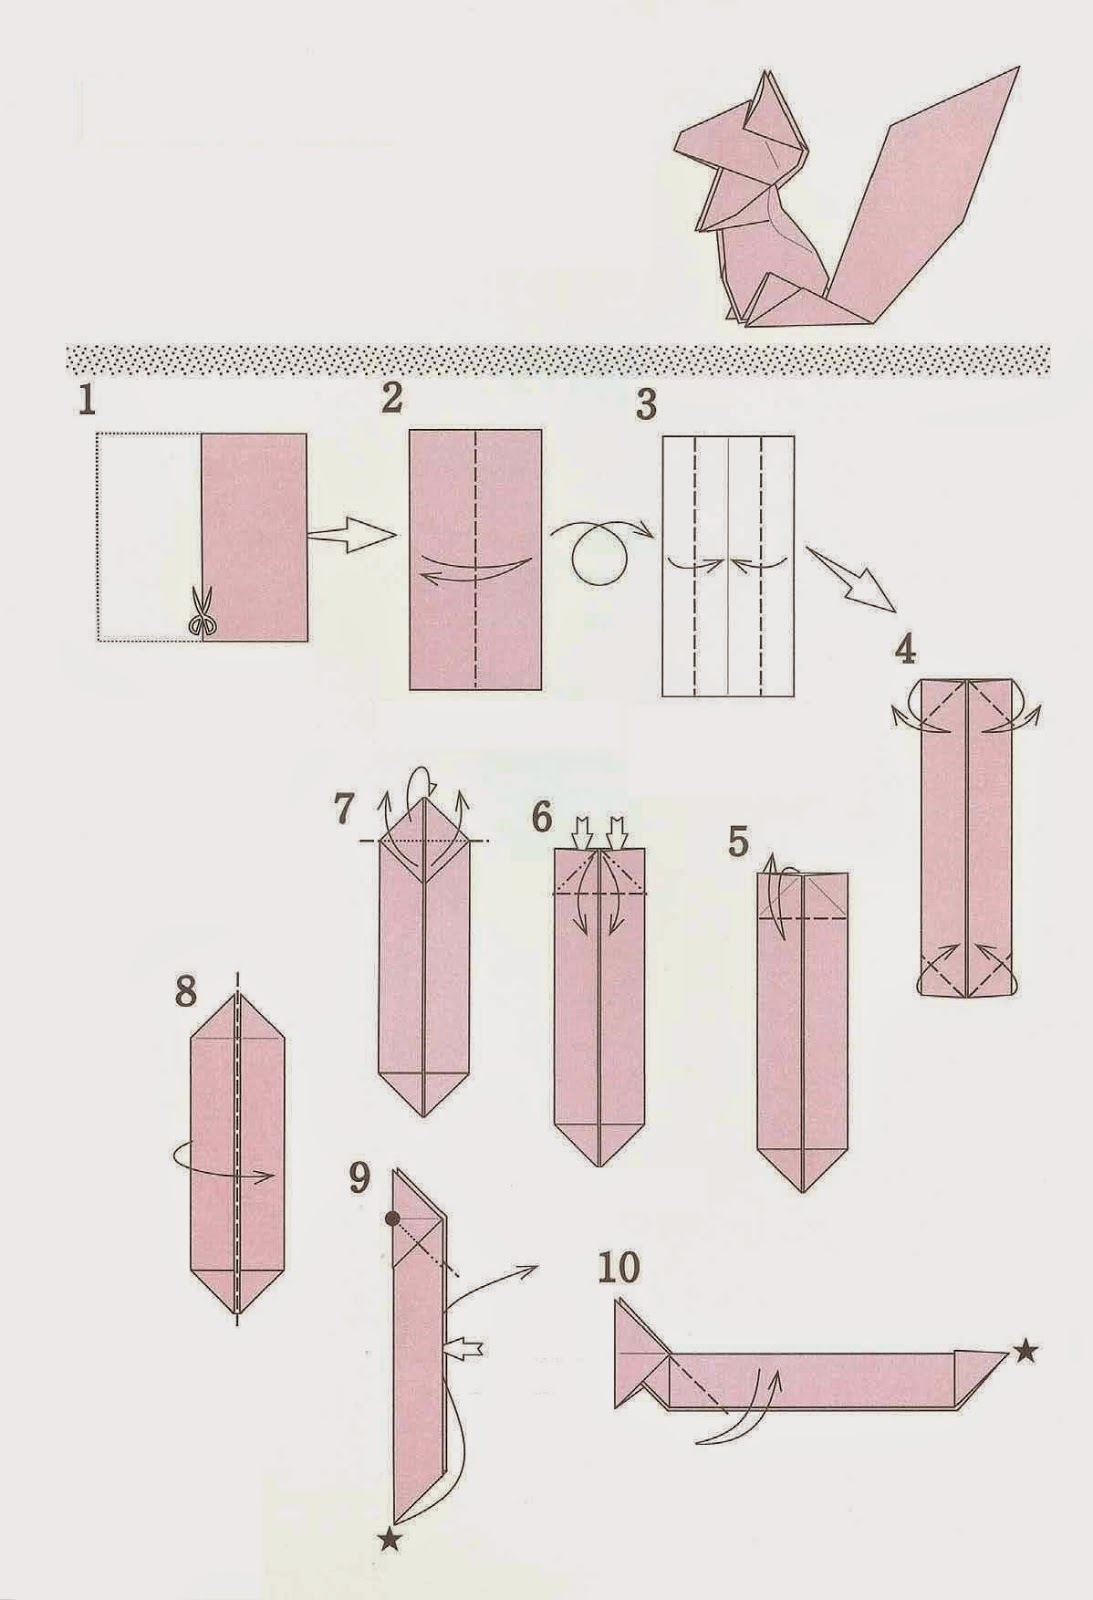 Easy Origami Diagrams How To Fold Origami Squirrel From The Paper Origami Diagram Of The